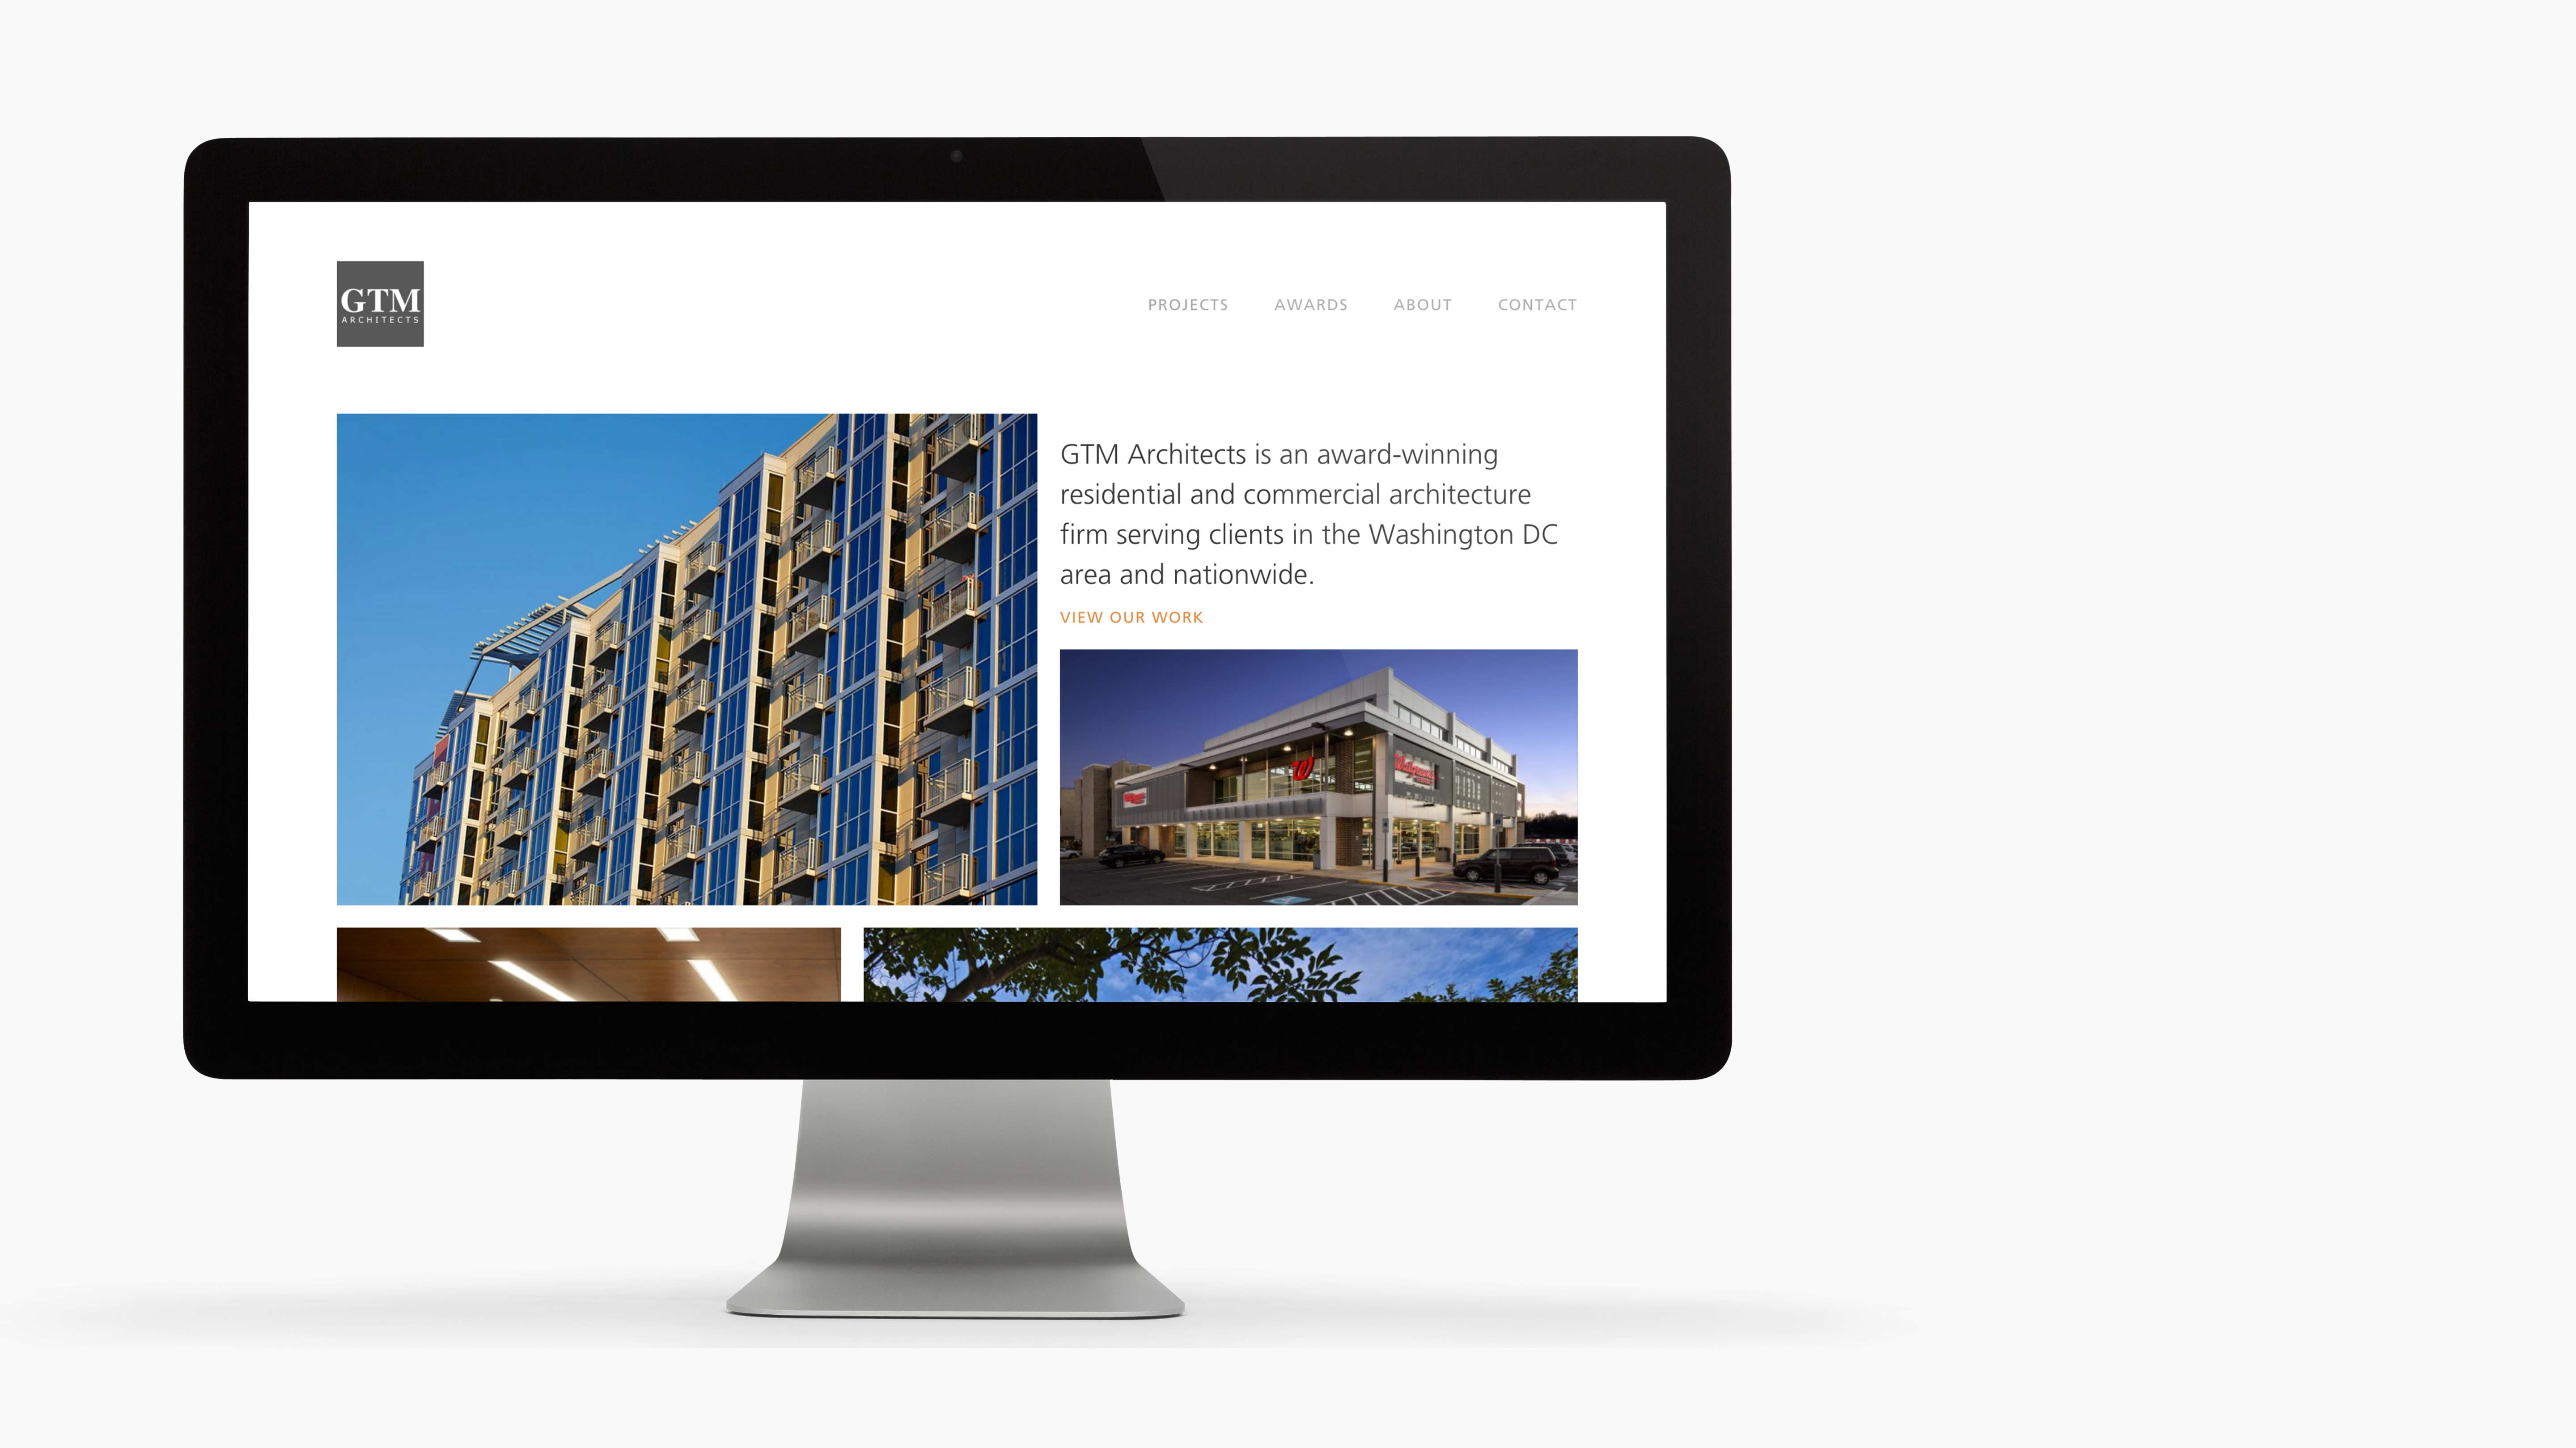 gtm_architects-desktop-homepage-huge-16x9